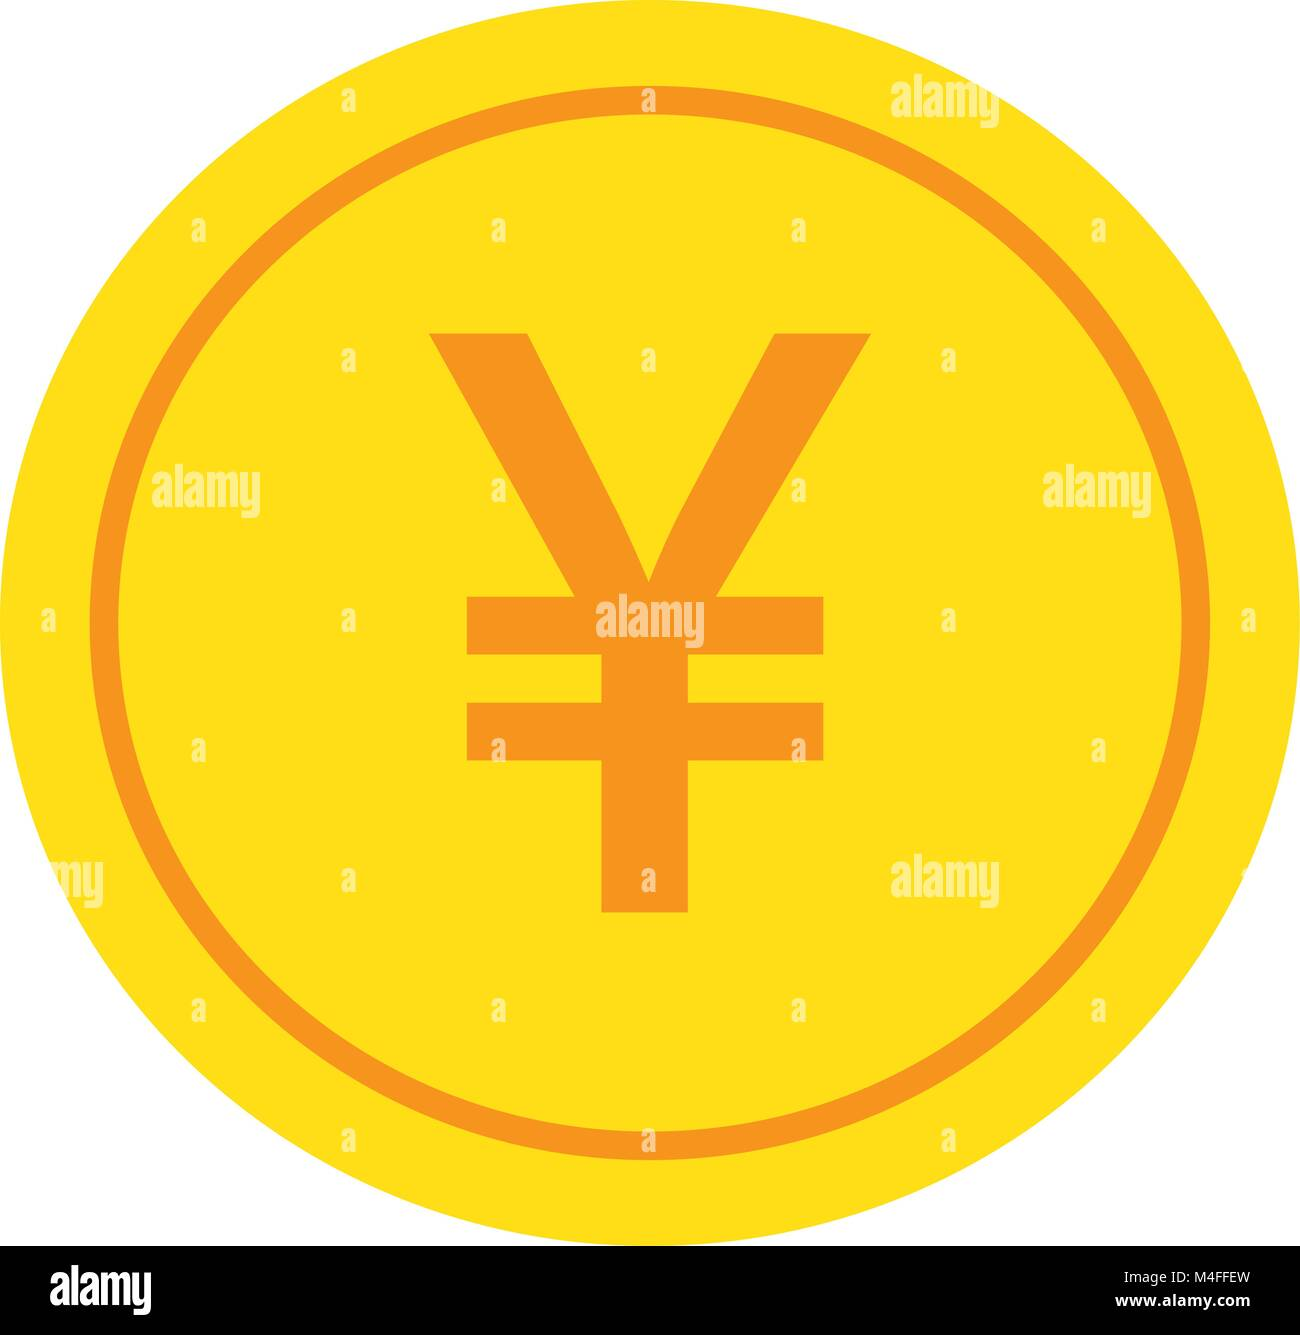 Yen yuan or renminbi currency icon or logo vector over a coin yen yuan or renminbi currency icon or logo vector over a coin symbol for japanese or chinese bank banking or japan and china finances biocorpaavc Gallery